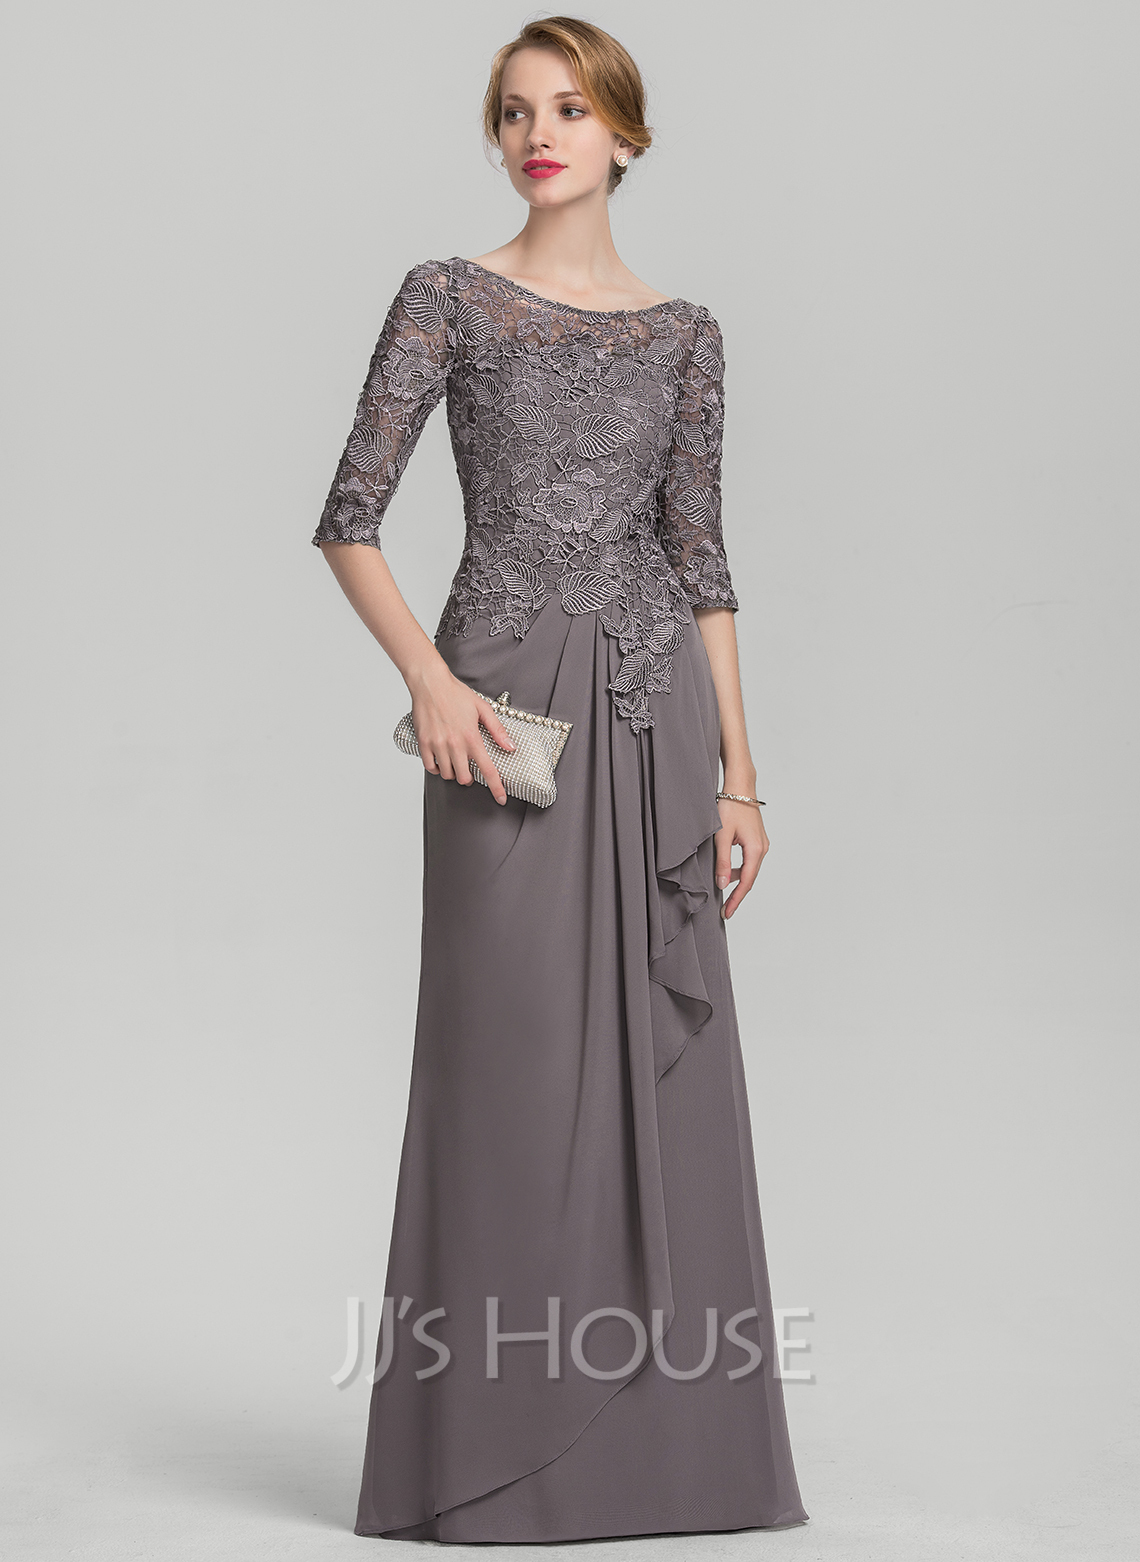 Affordable Mother Of The Bride Dresses Jjshouse